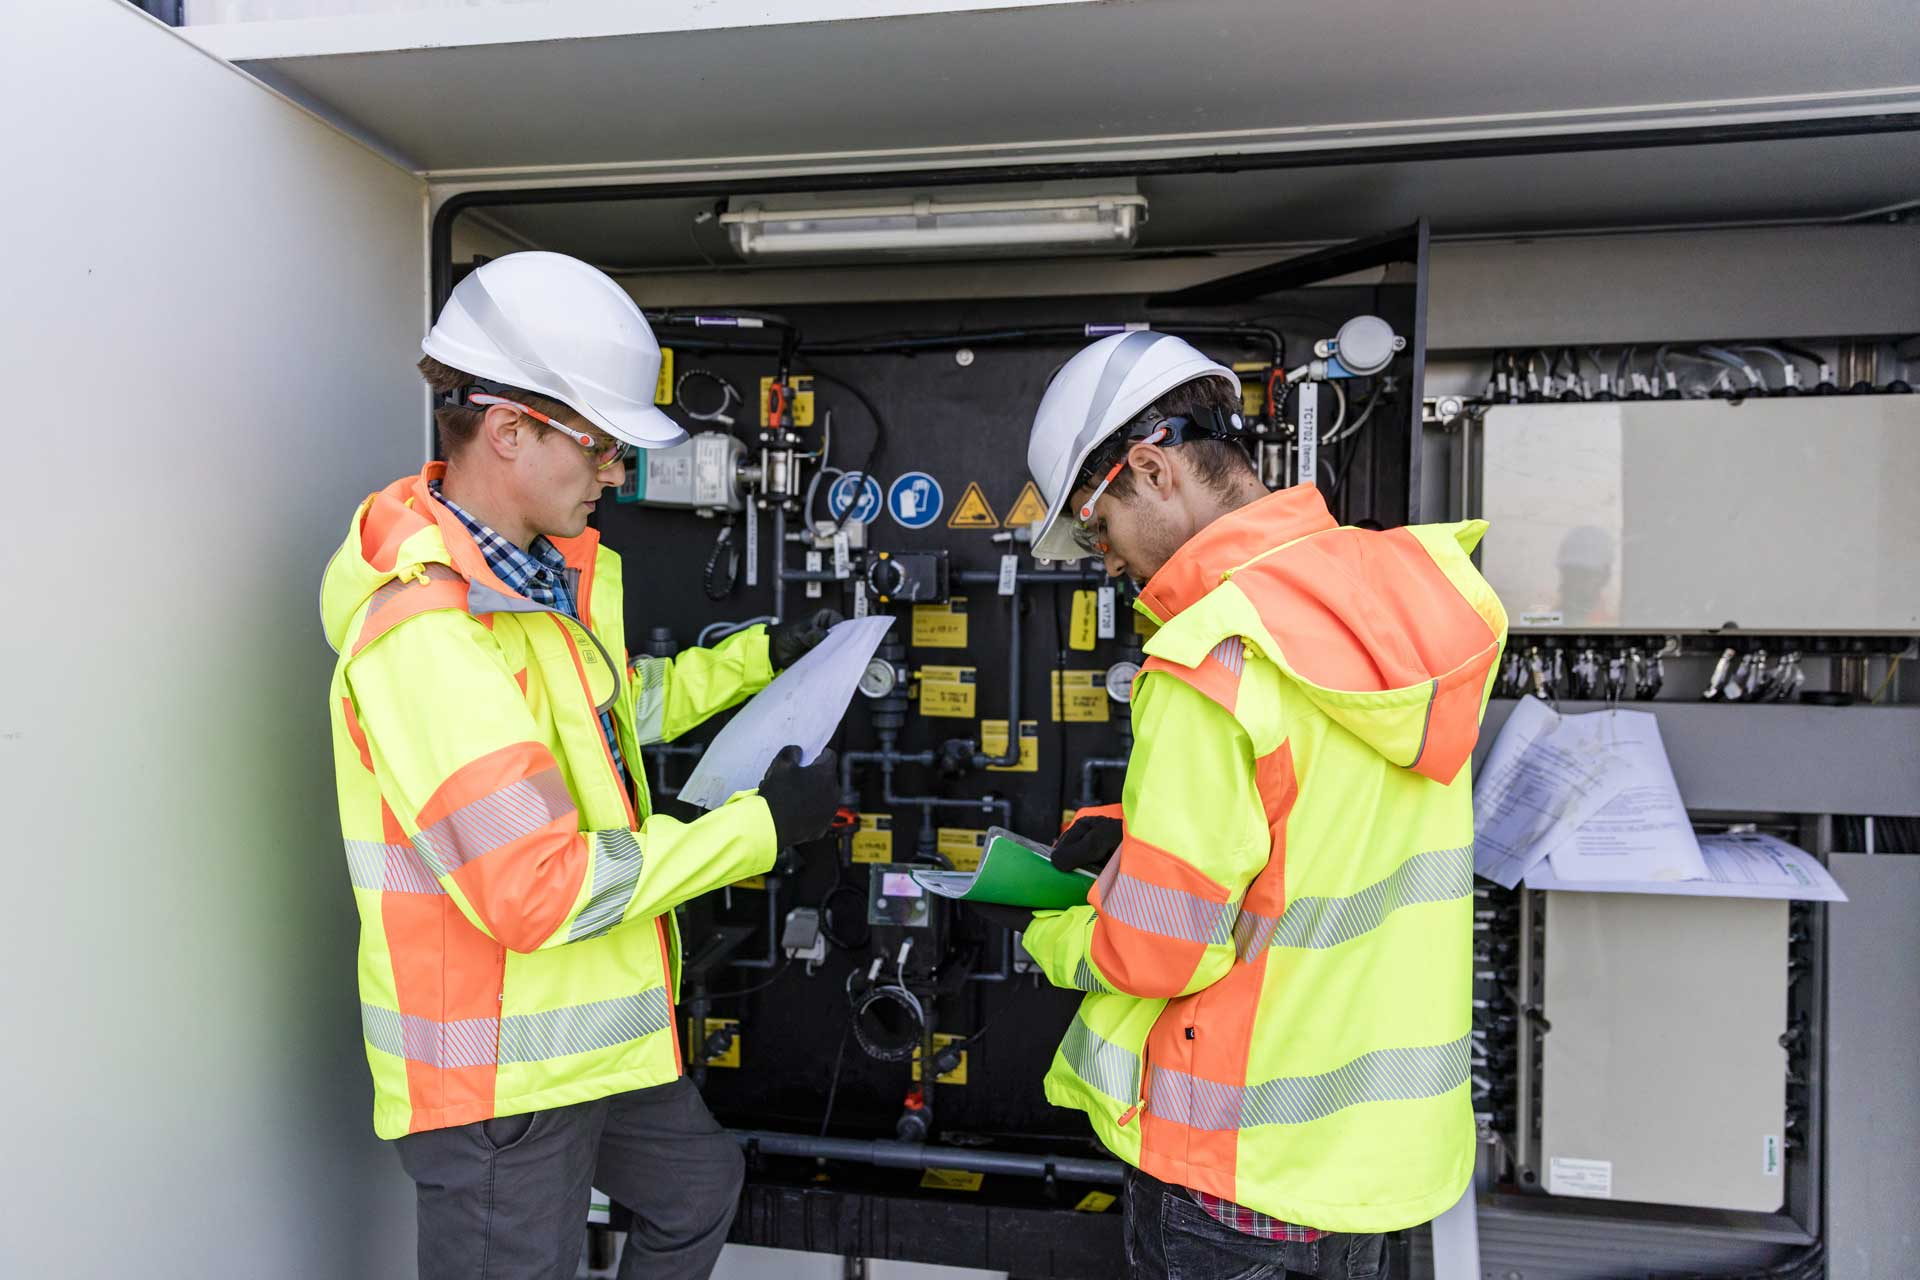 Two electrical engineers carrying out testing on an electrical installation